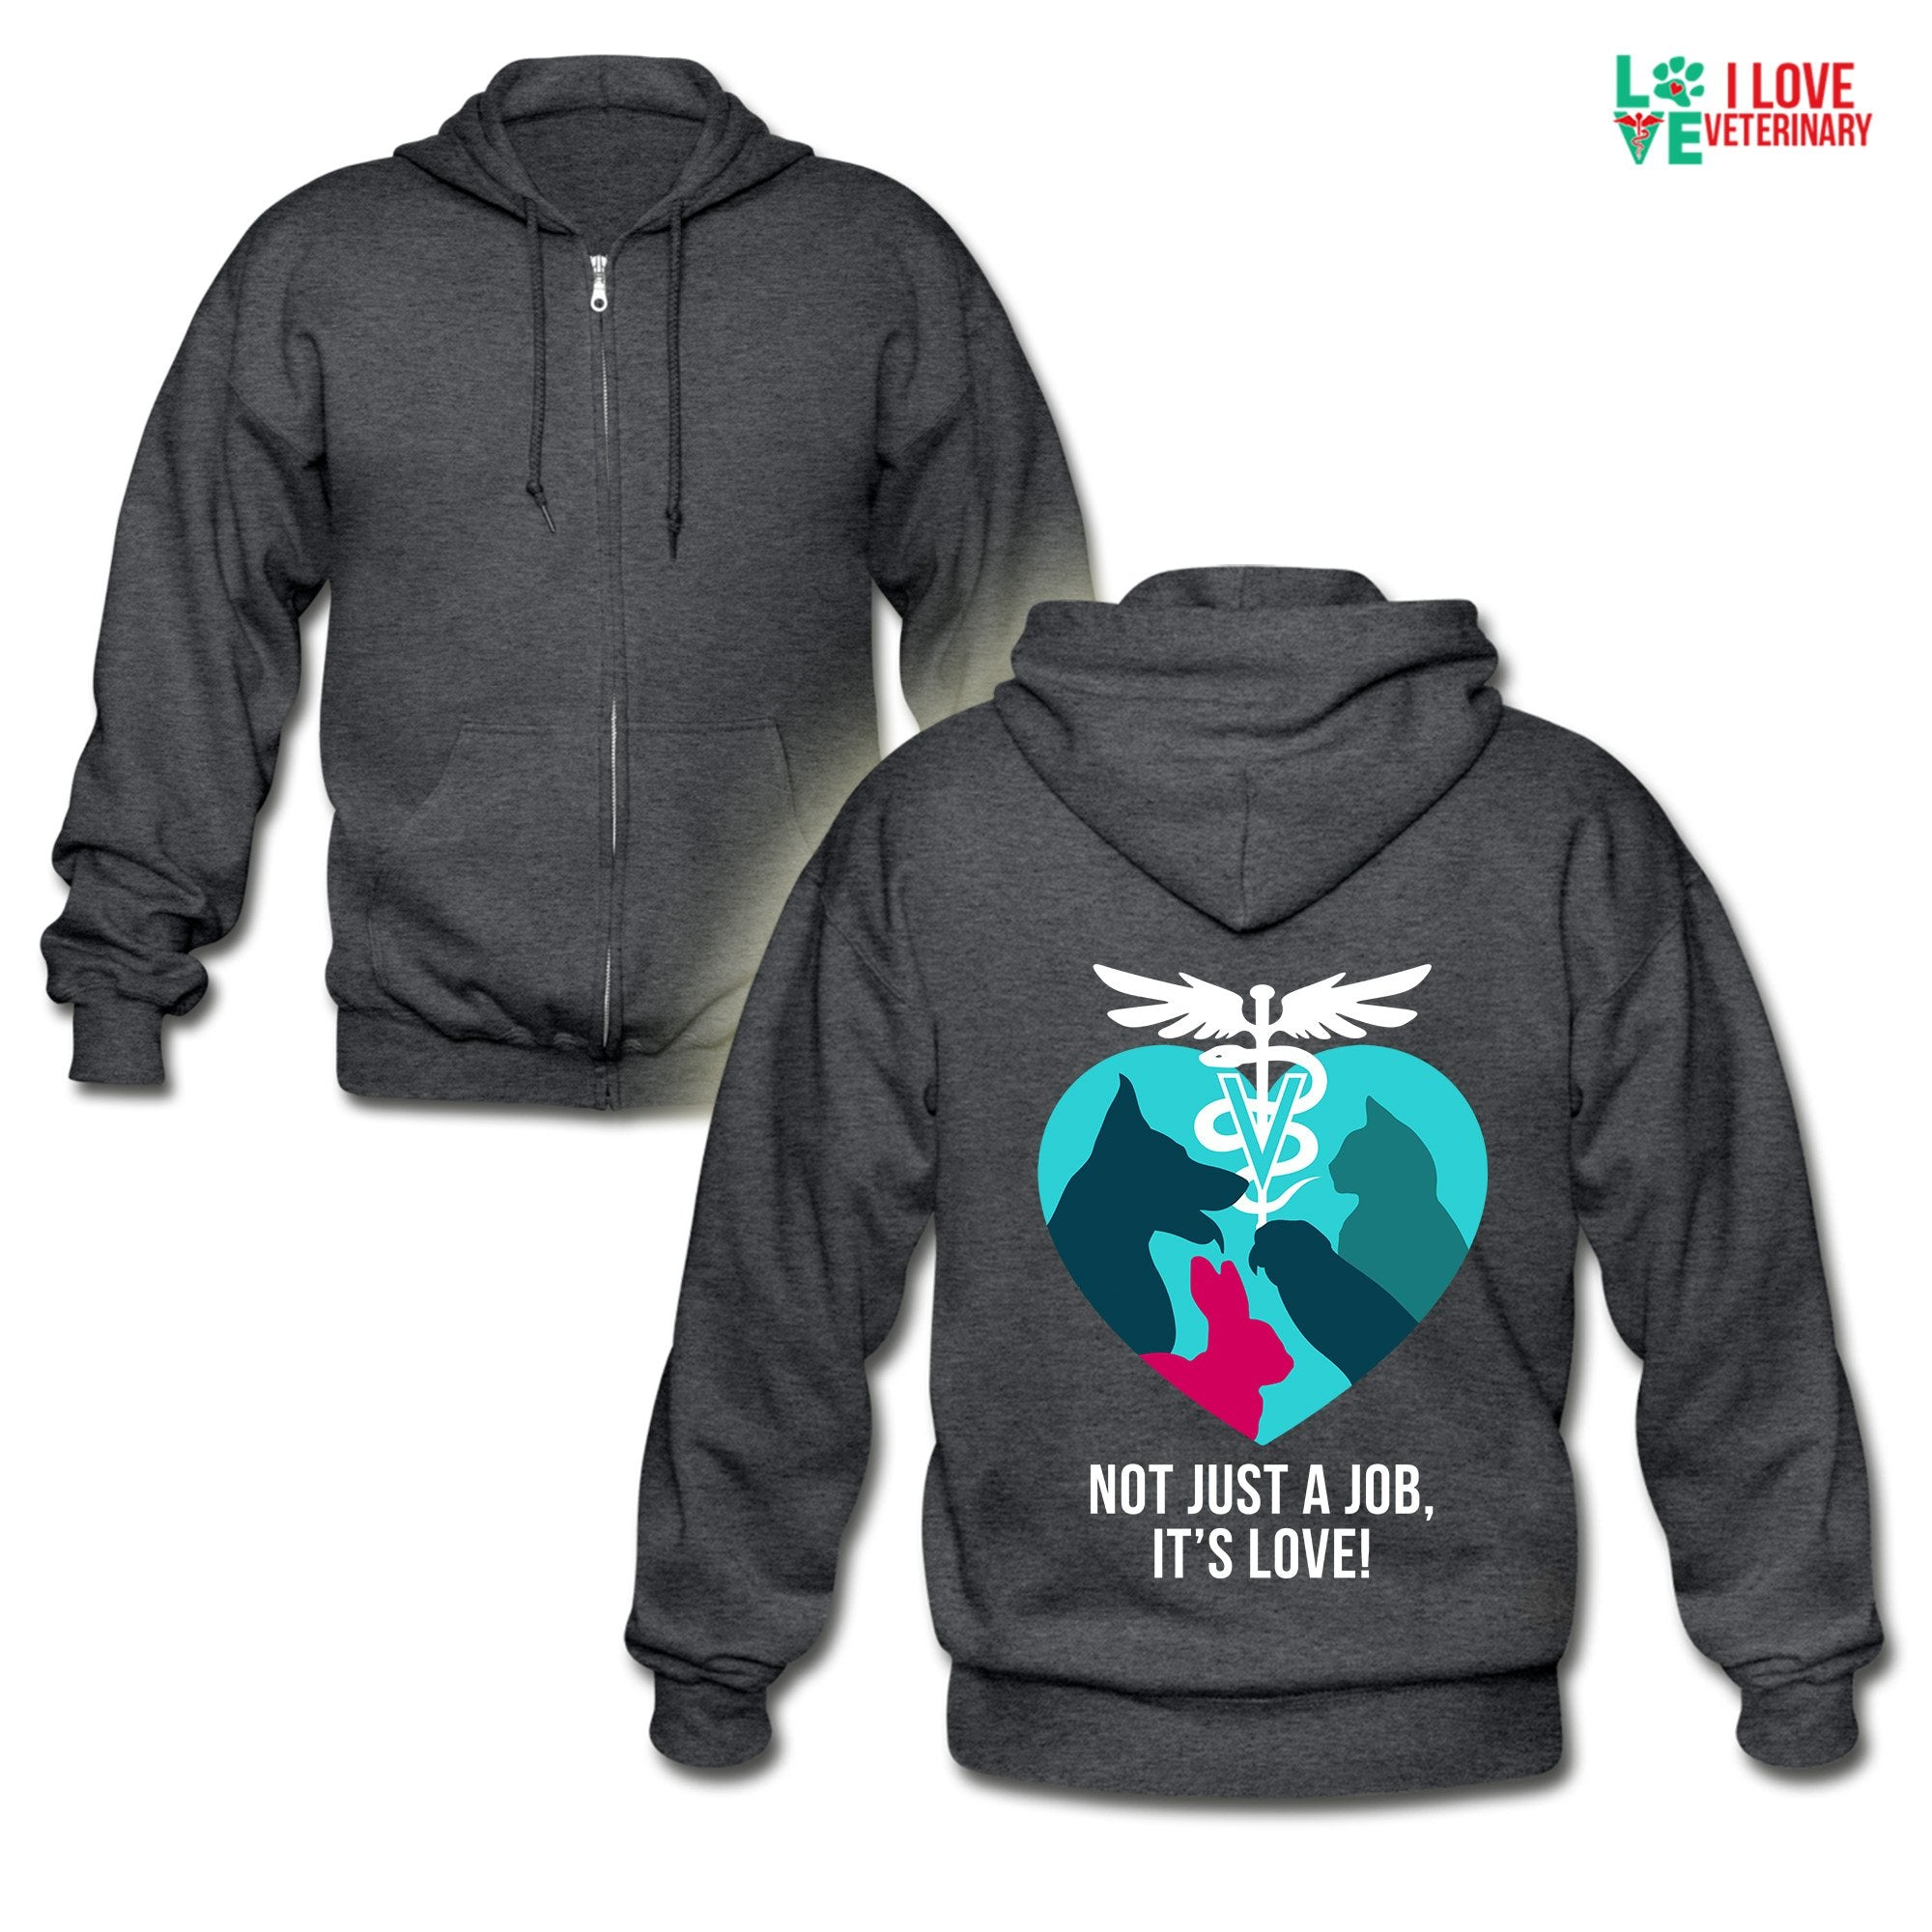 Veterinary - Not just a job, it's love Unisex Zip Hoodie-Gildan Heavy Blend Adult Zip Hoodie-I love Veterinary